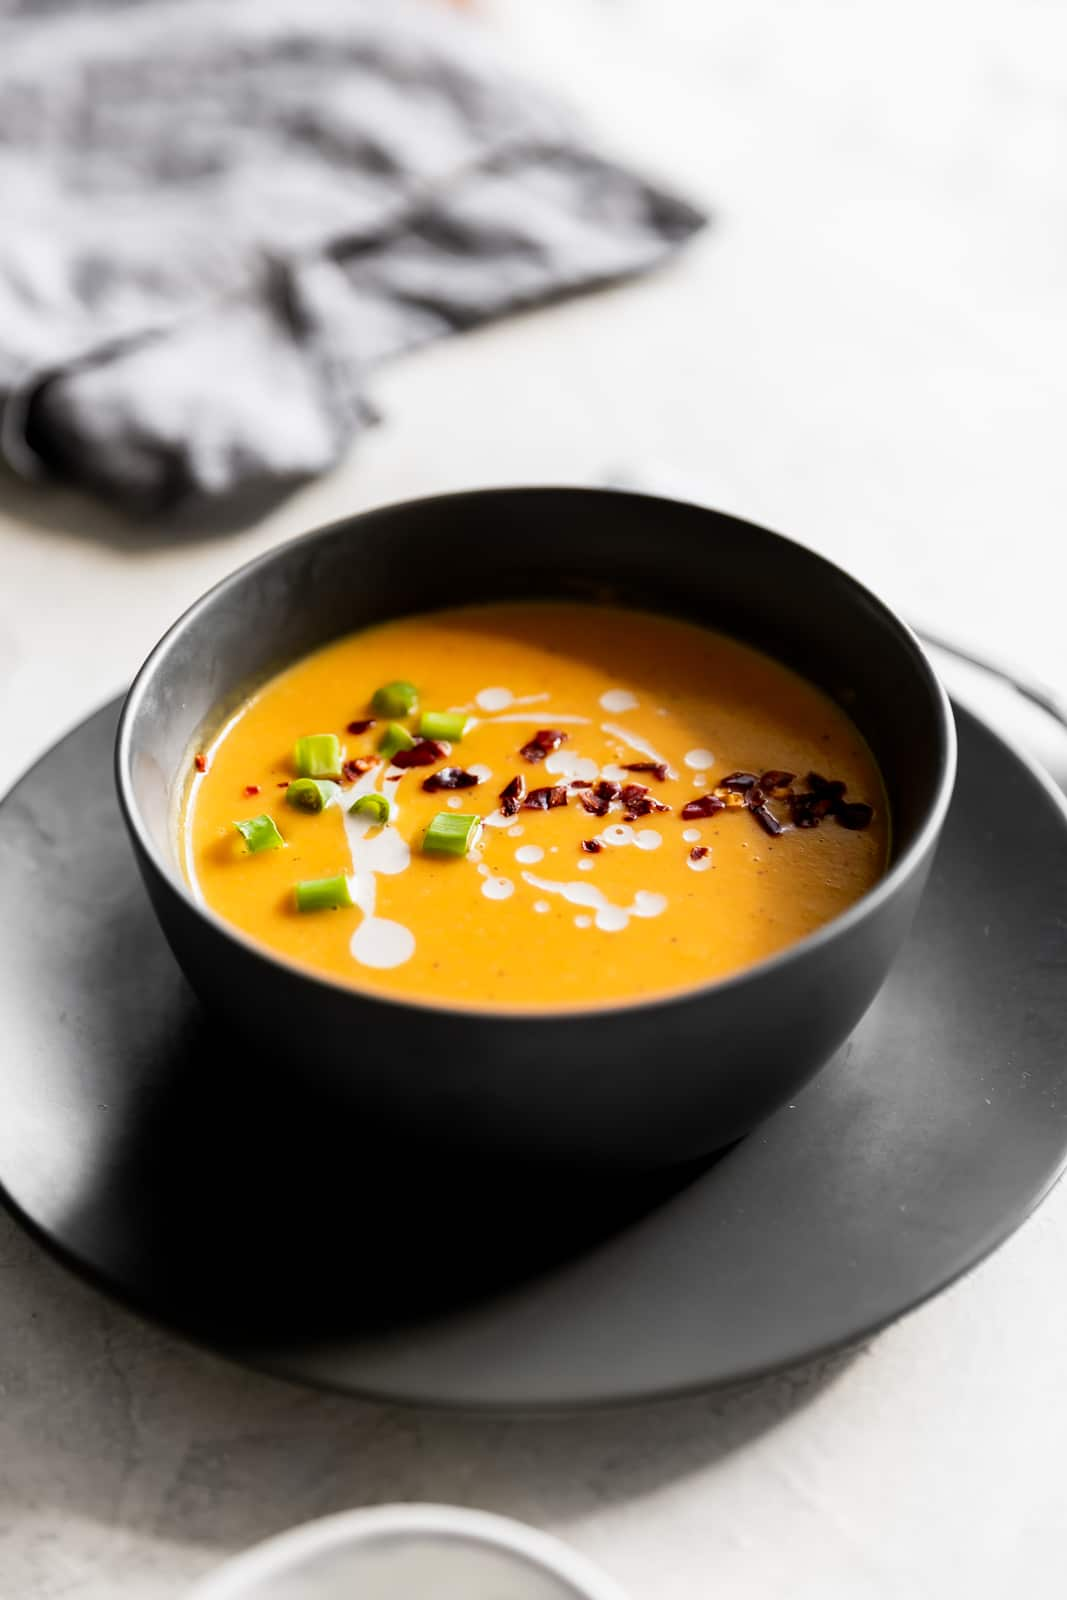 Creamy, dairy-free, and spicy vegan Thai butternut squash soup made with fresh ginger, red curry paste and coconut milk. Ready in 25 minutes!